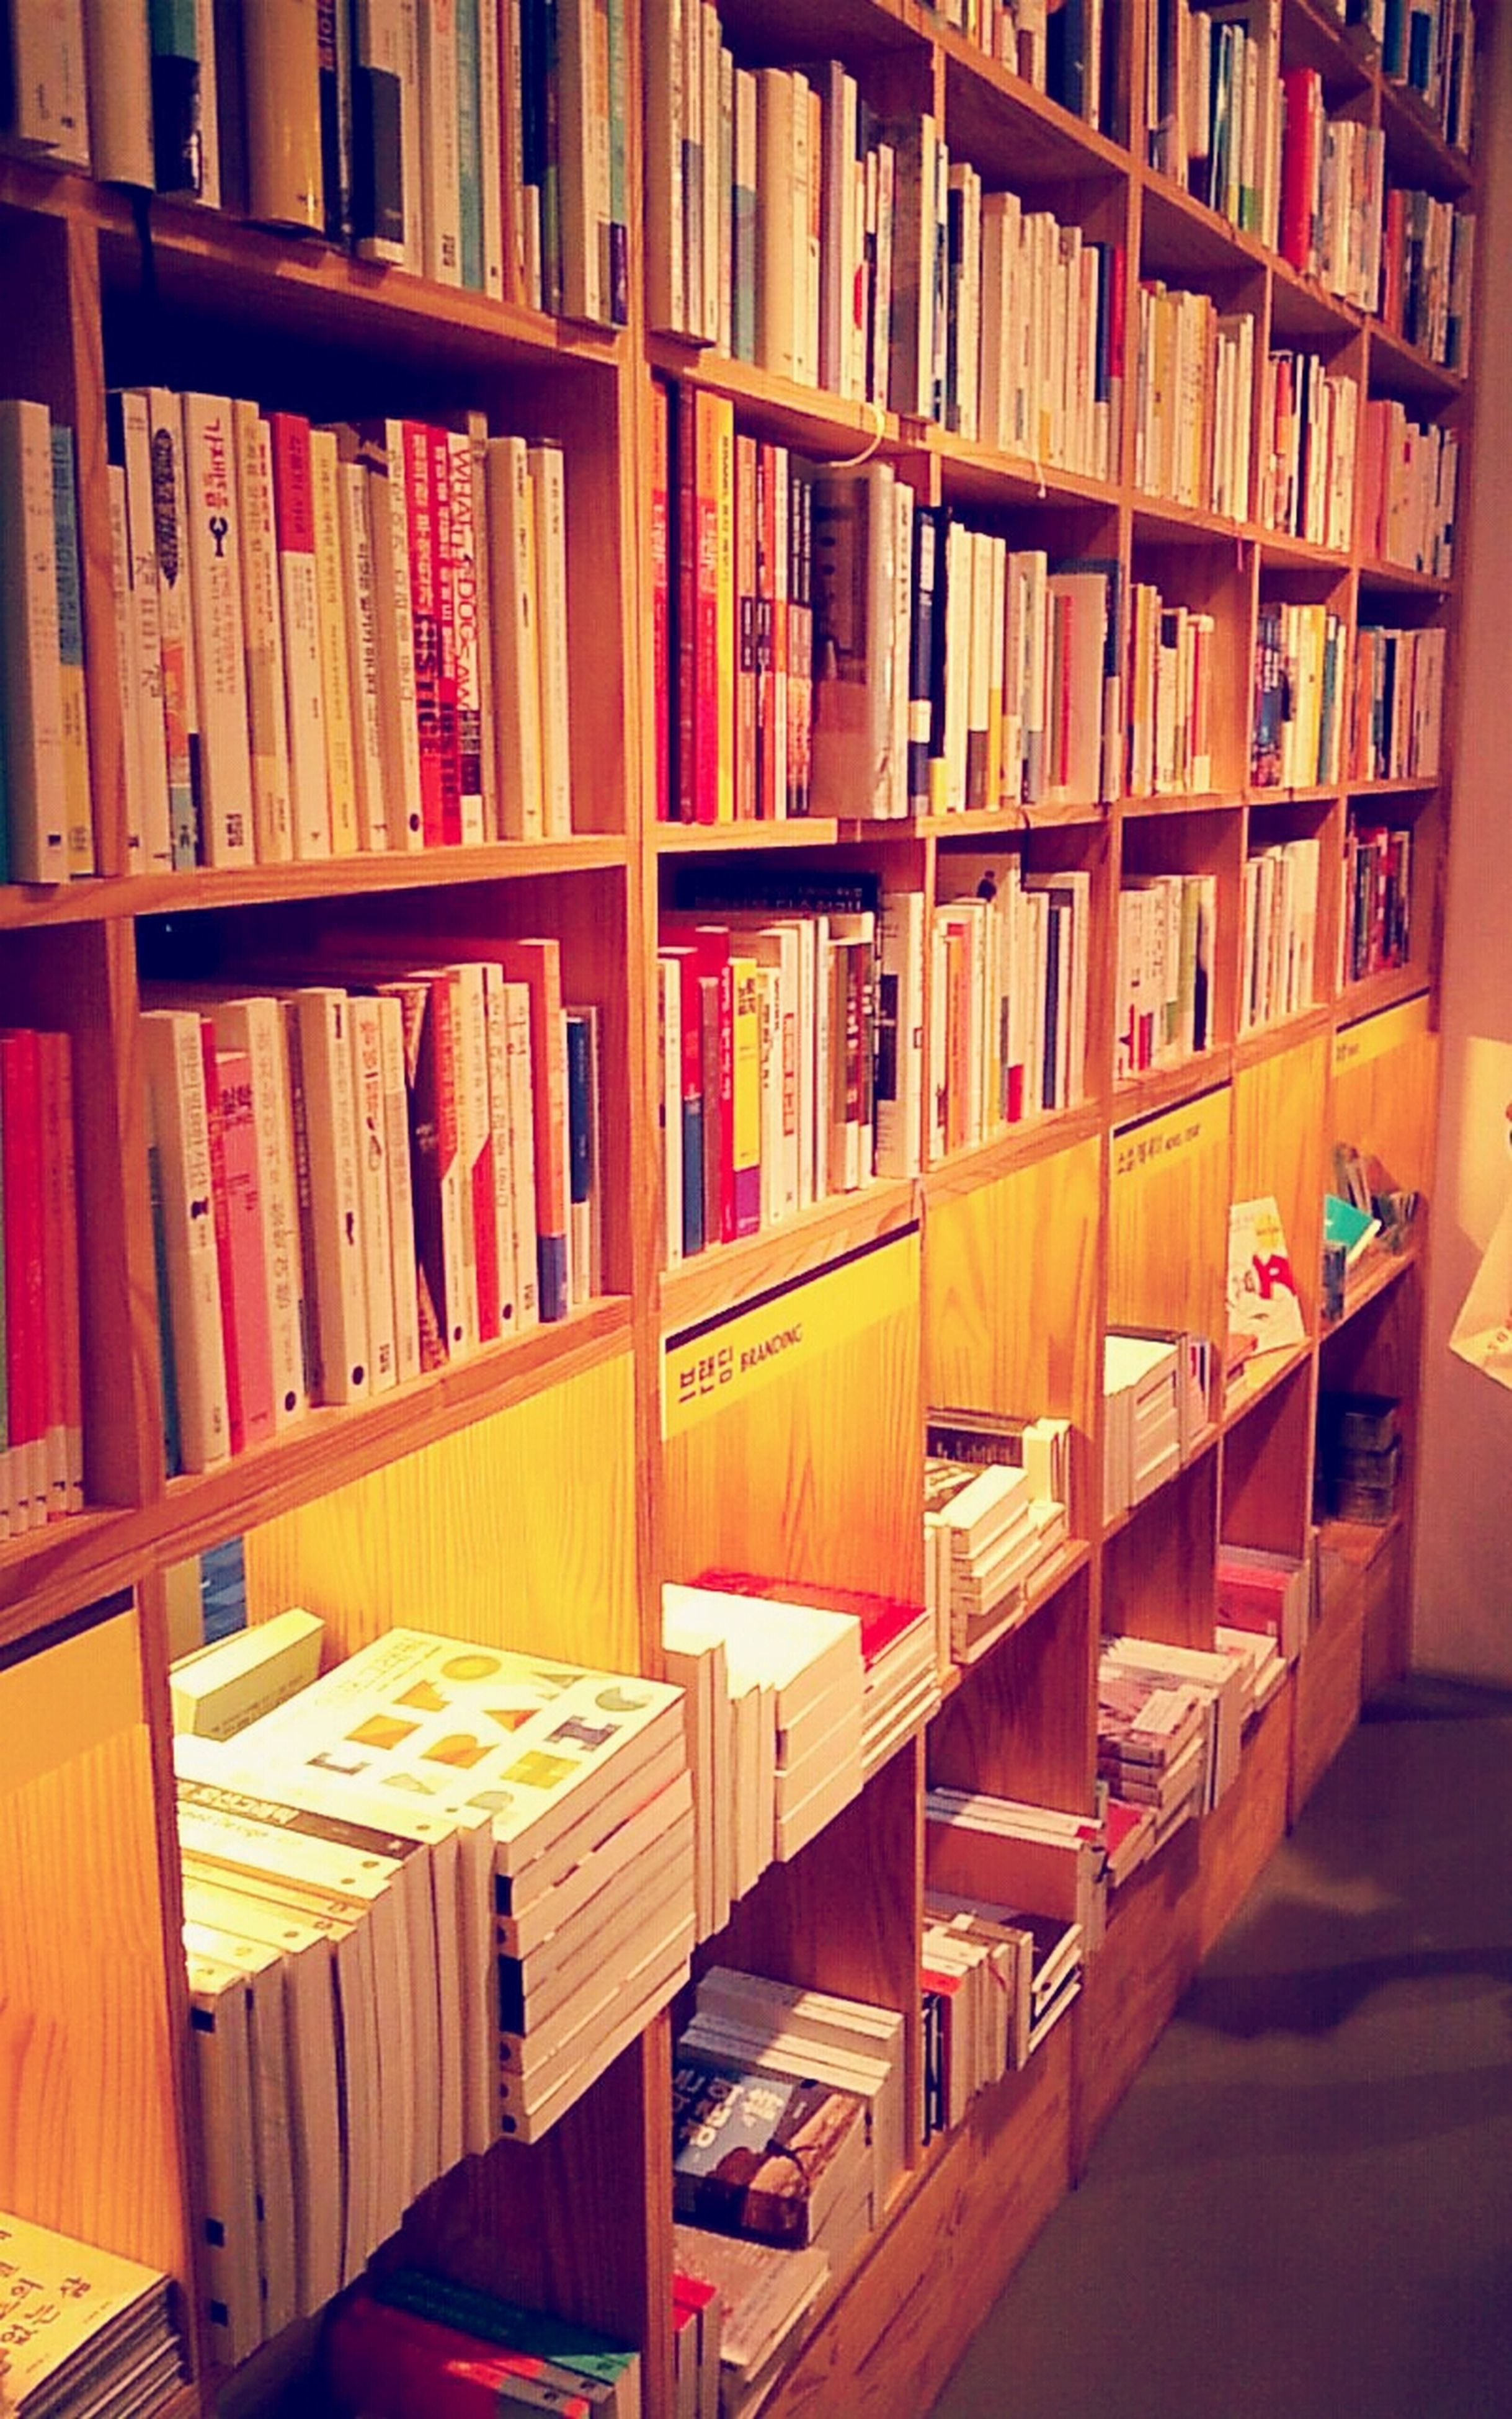 indoors, in a row, arrangement, large group of objects, order, bookshelf, book, multi colored, education, shelf, variation, abundance, choice, library, collection, wood - material, no people, stack, literature, repetition